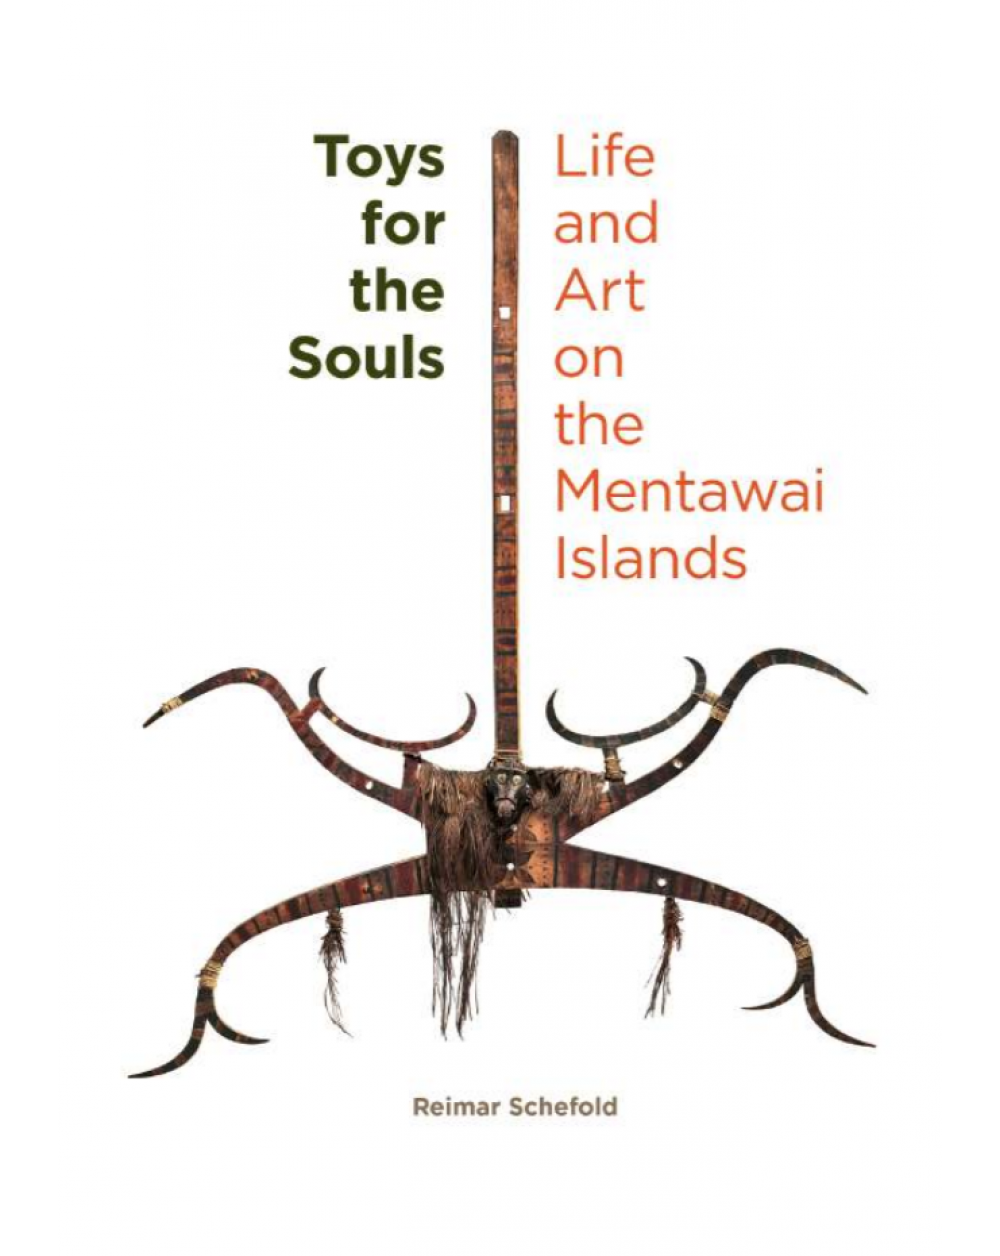 Toys for the Souls Life and Art on the Mentawai Islands Reimar Schefold